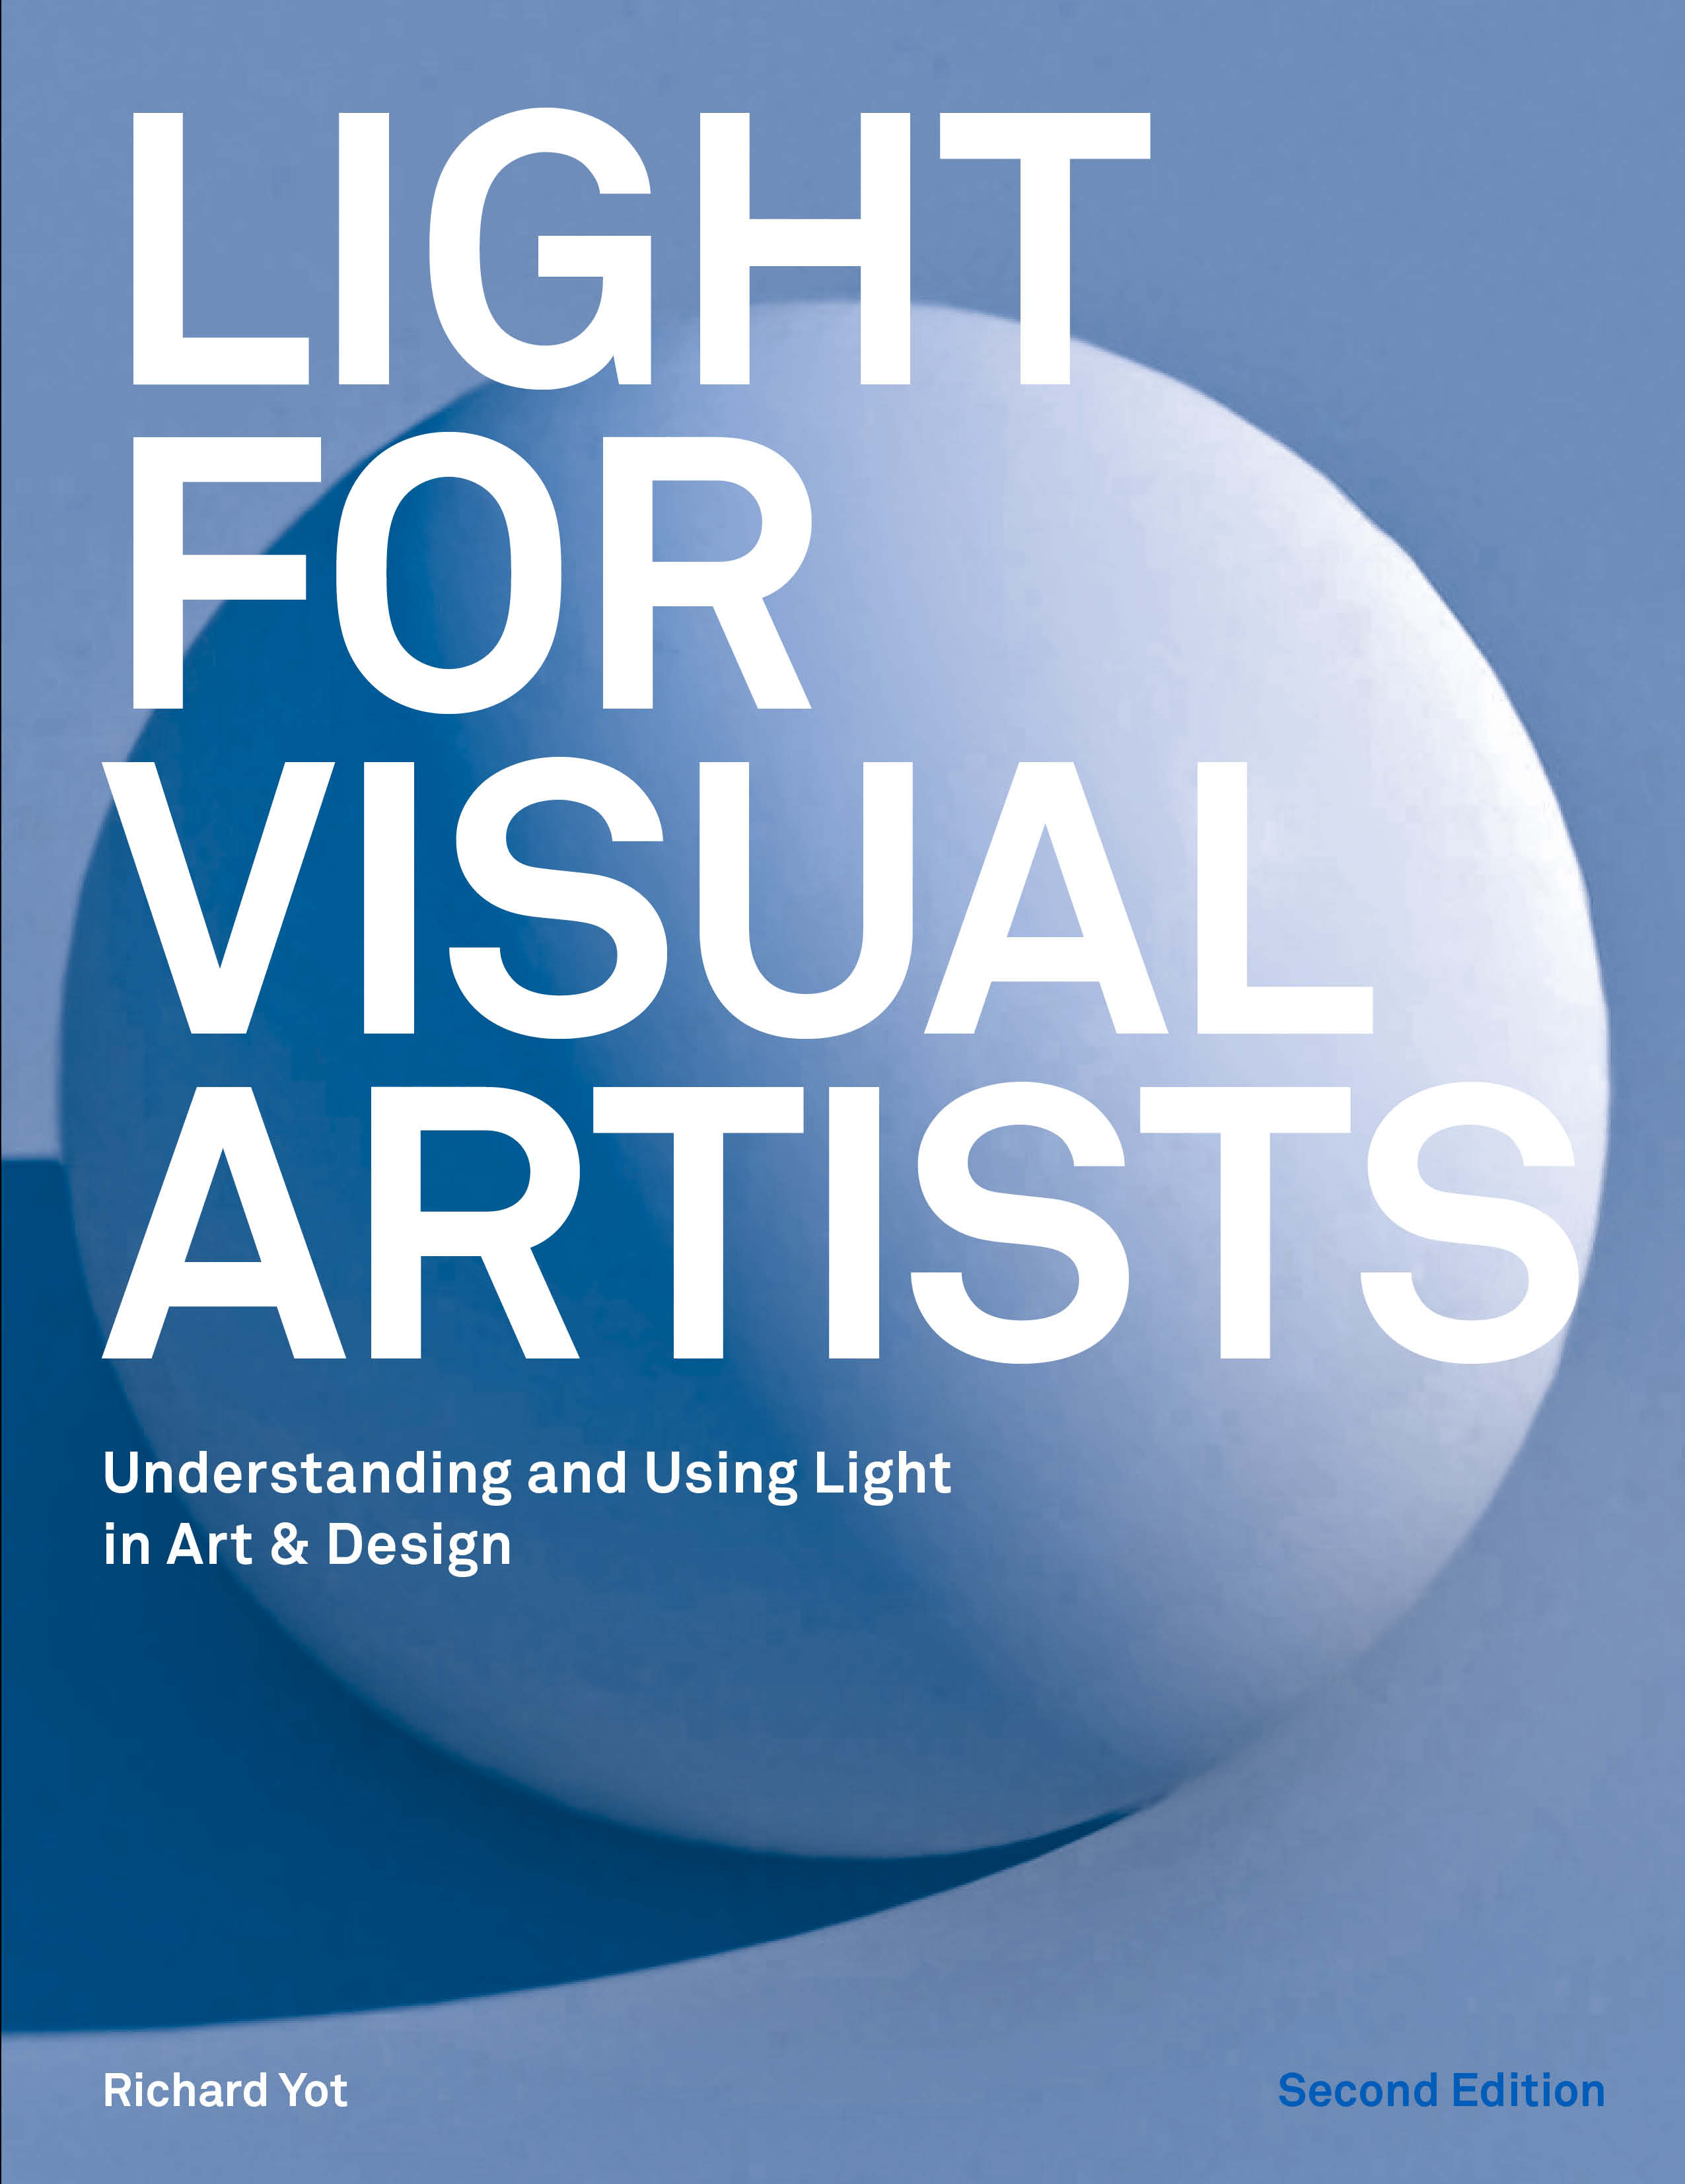 Light for Visual Artists: Understanding and Using Light in Art & Design, Second Edition - Product Thumbnail